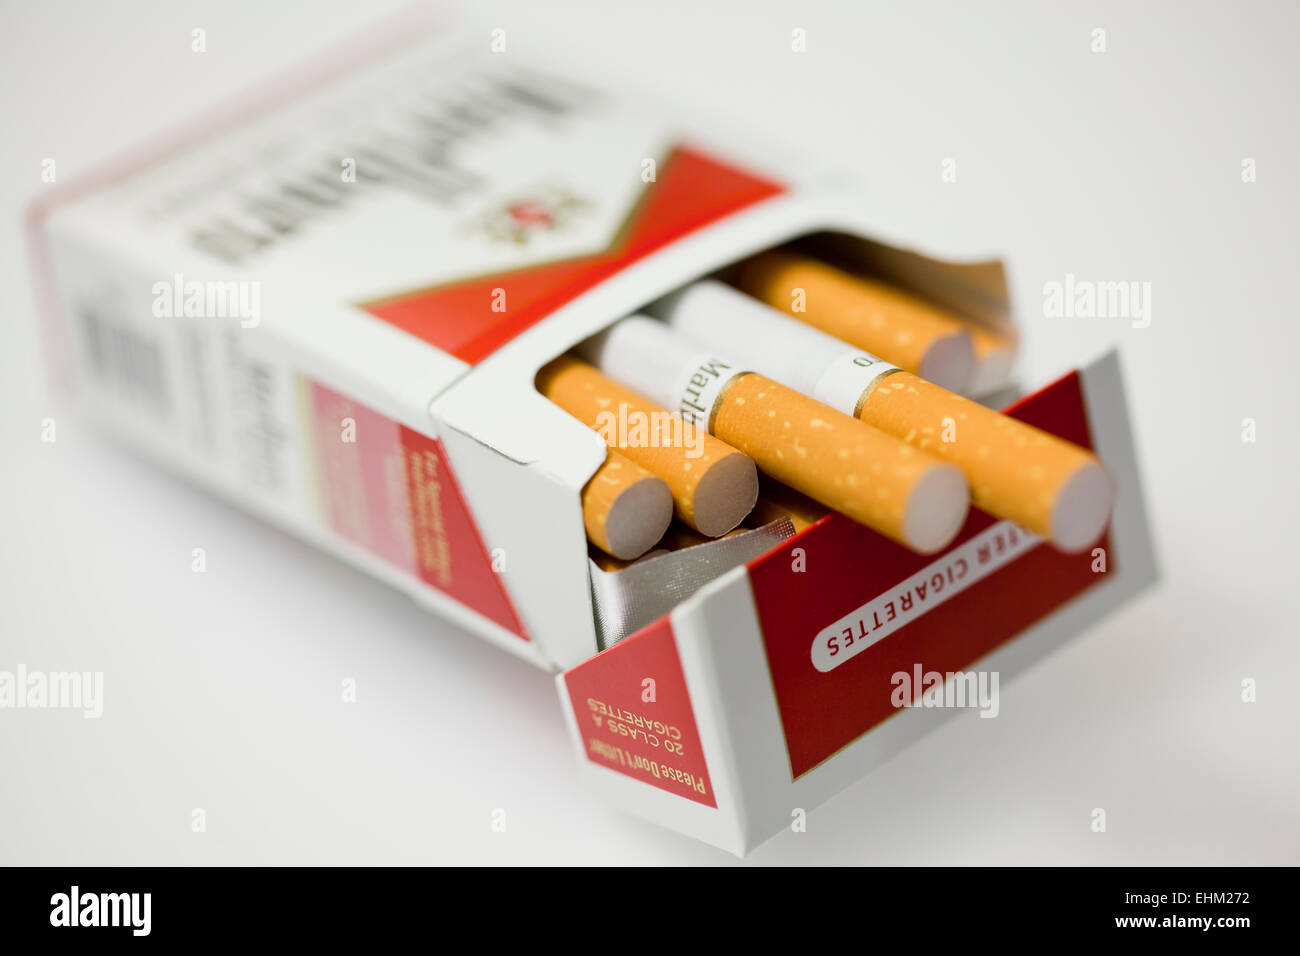 Buy cheap cartons cigarettes Gitanes